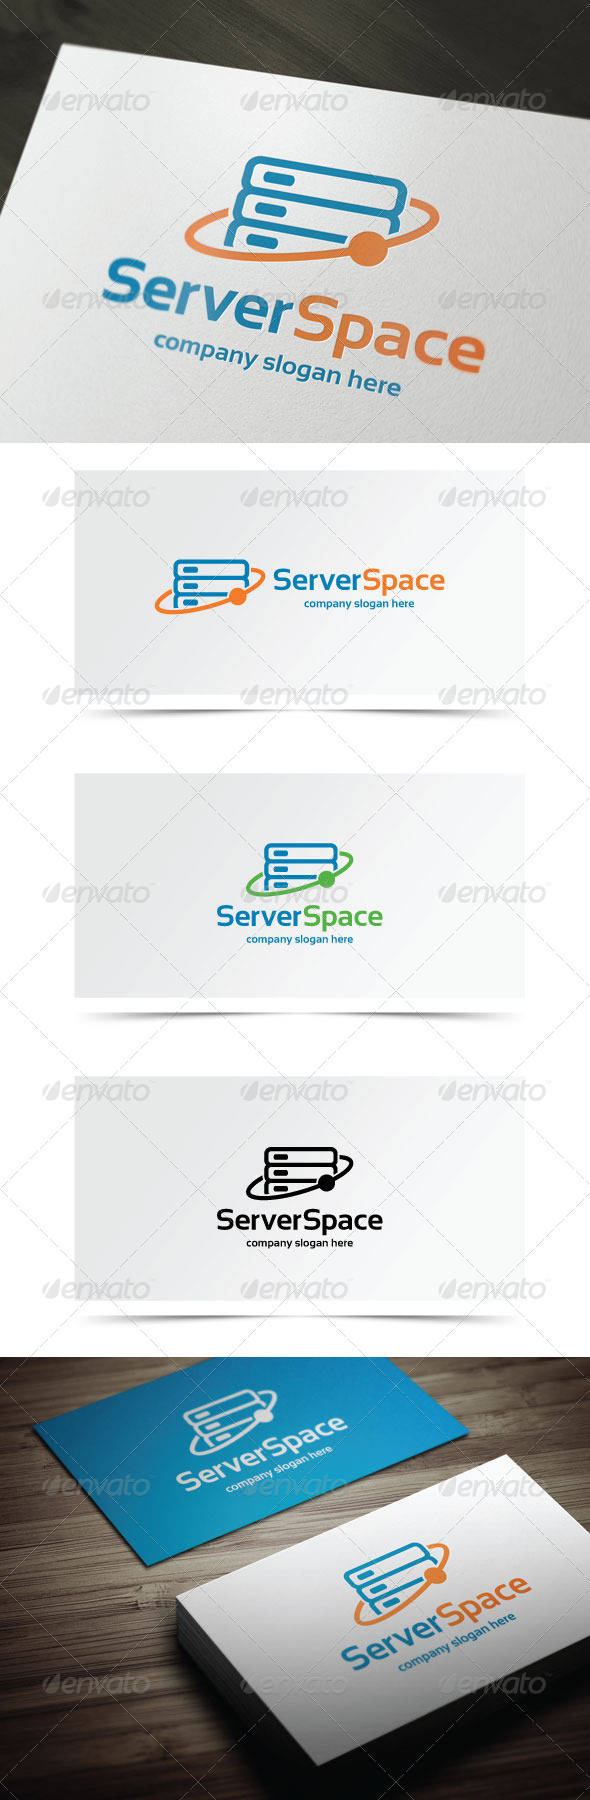 GraphicRiver Server Space 7932061